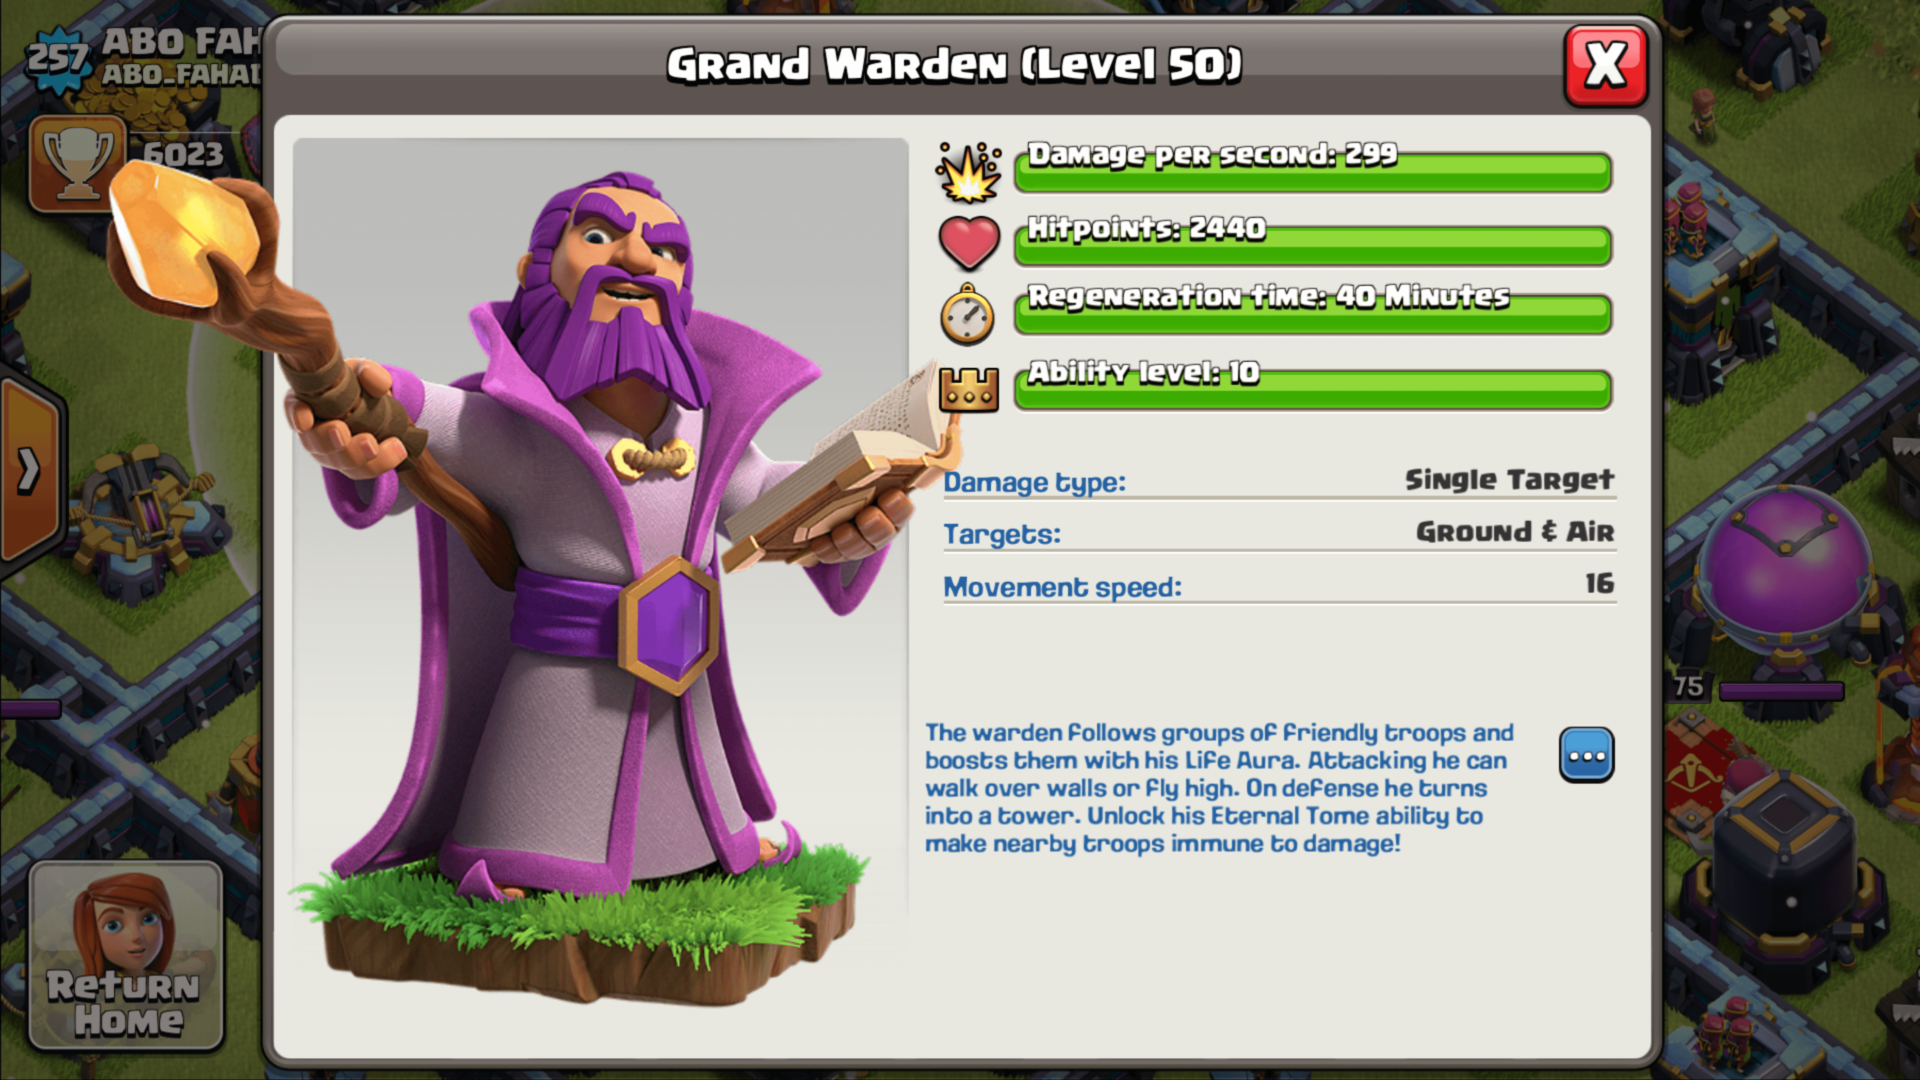 Grand warden screenshot of Clash of Clans video game interface.